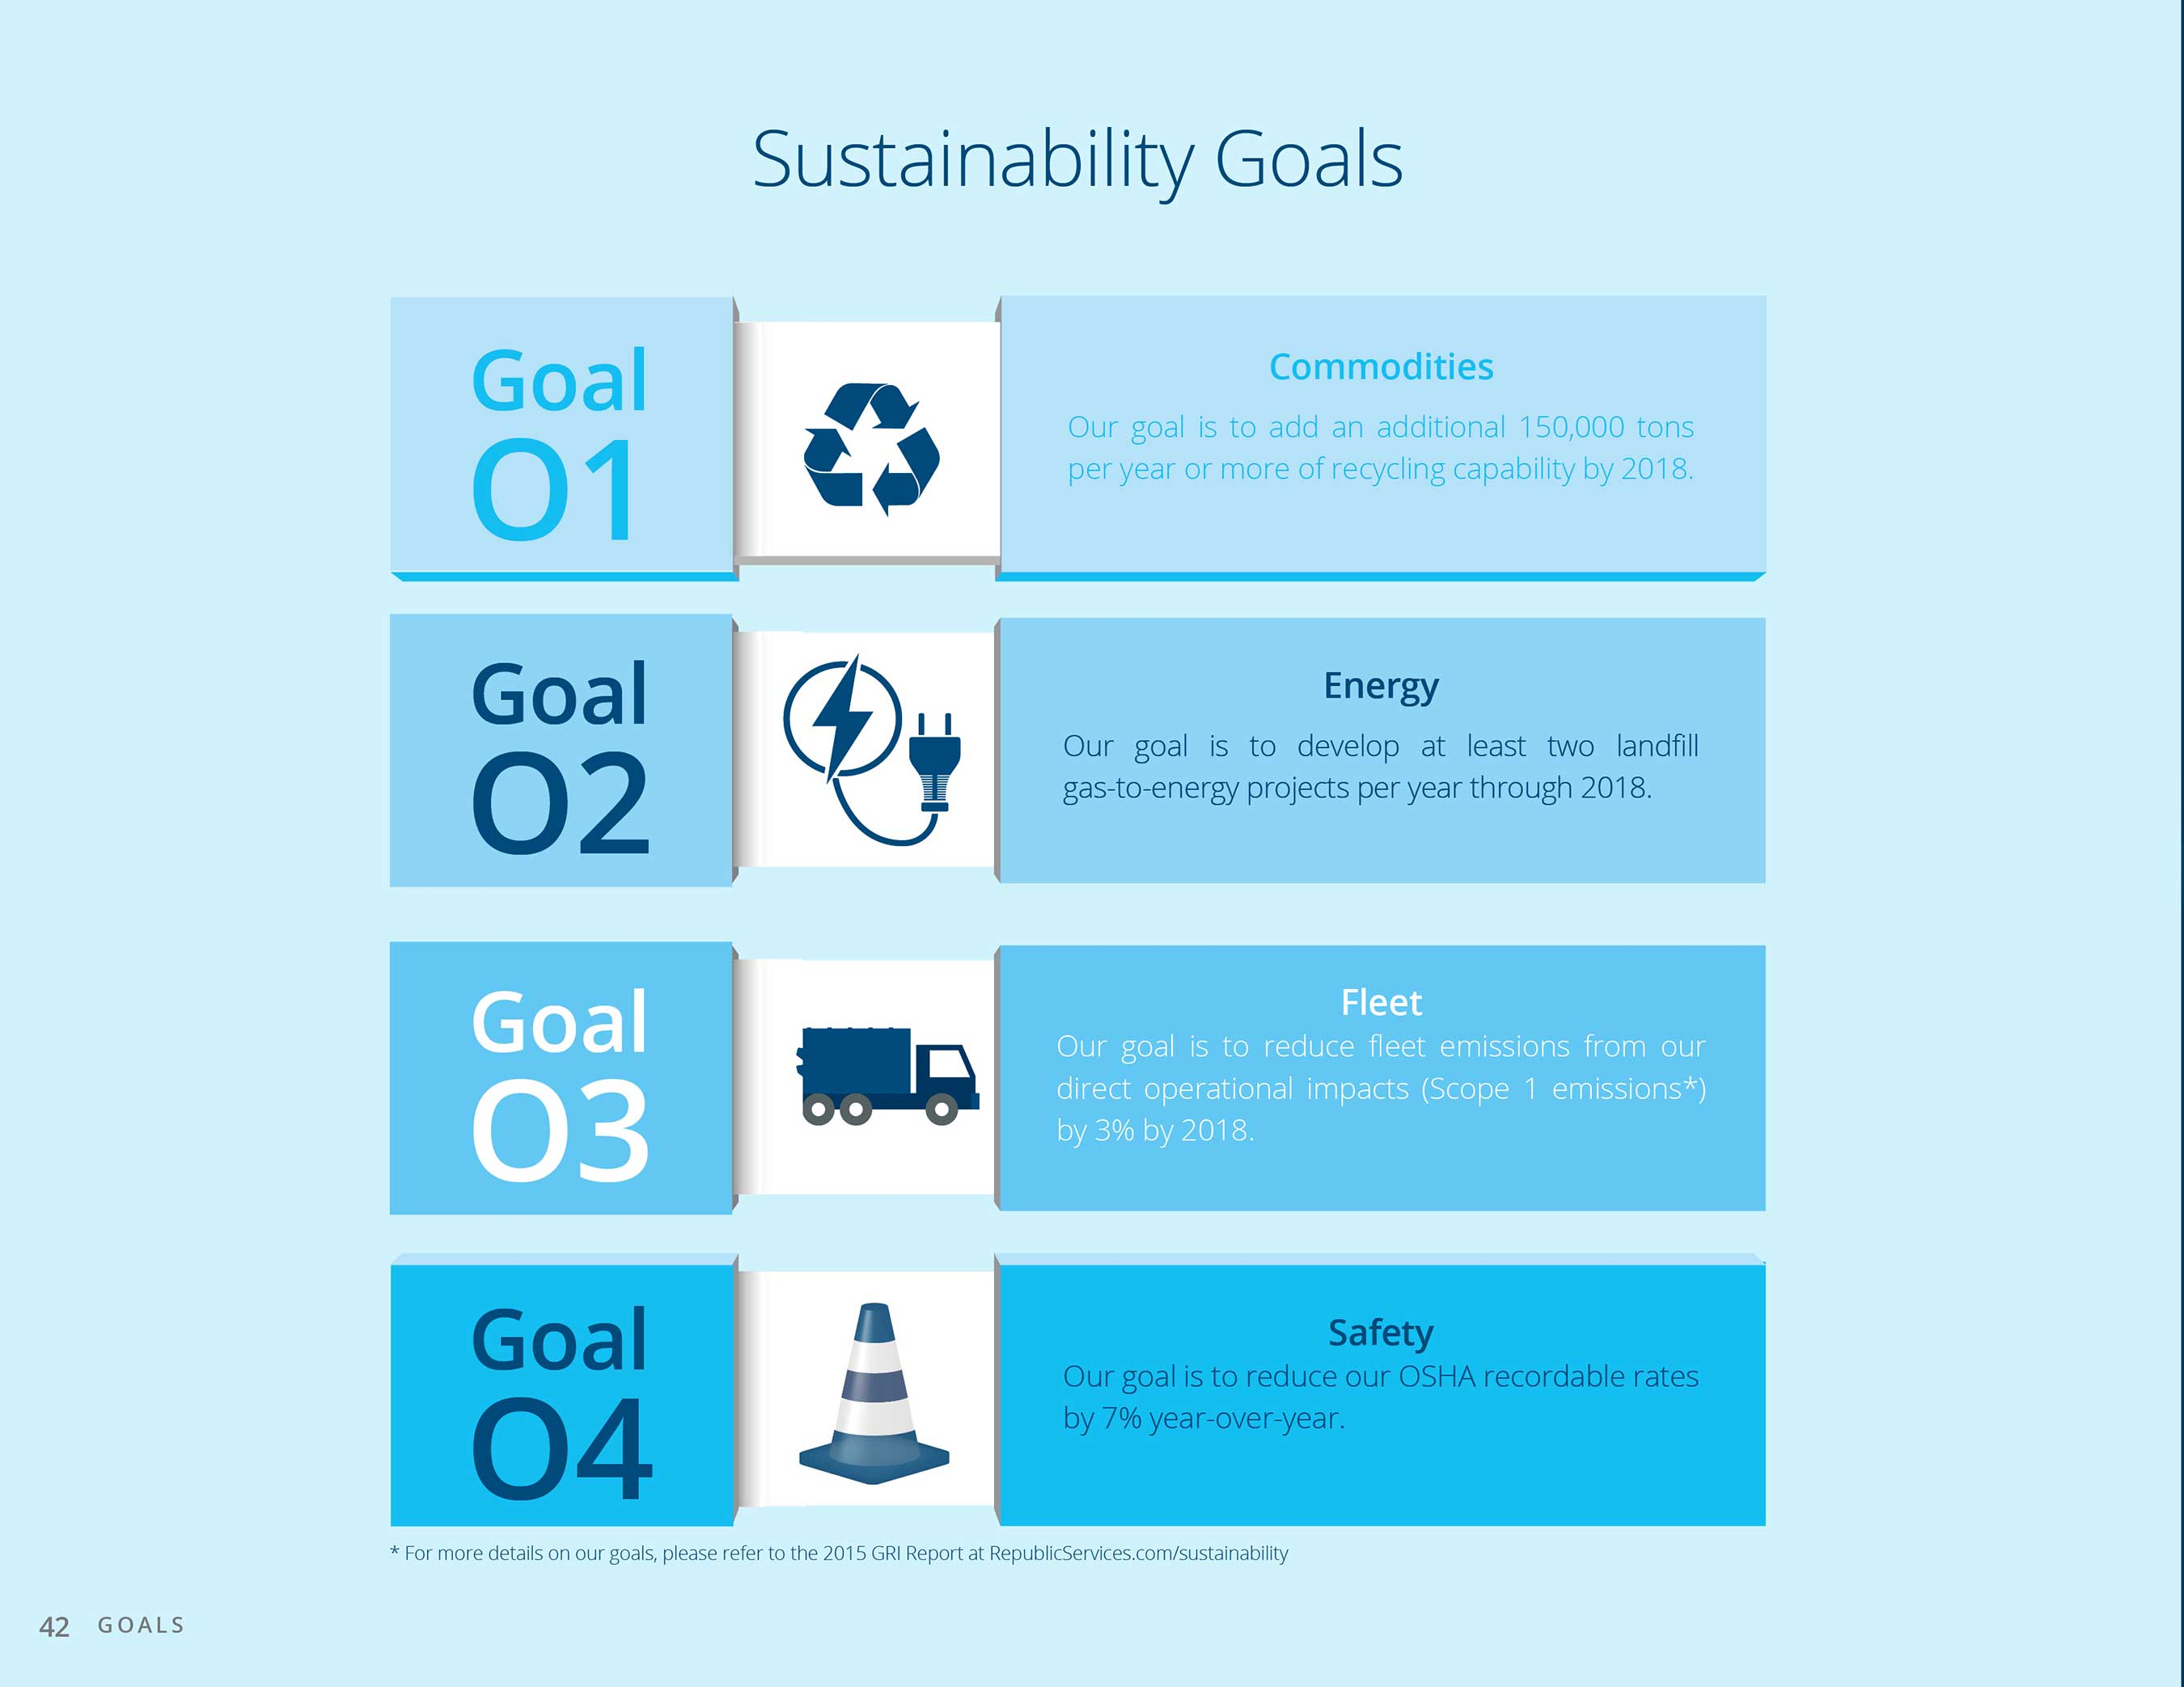 Republic's Sustainability Goals: increasing recycling capabilities, adding landfill gas-to-energy projects, reducing fleet emissions and continuing to improve safety standards.